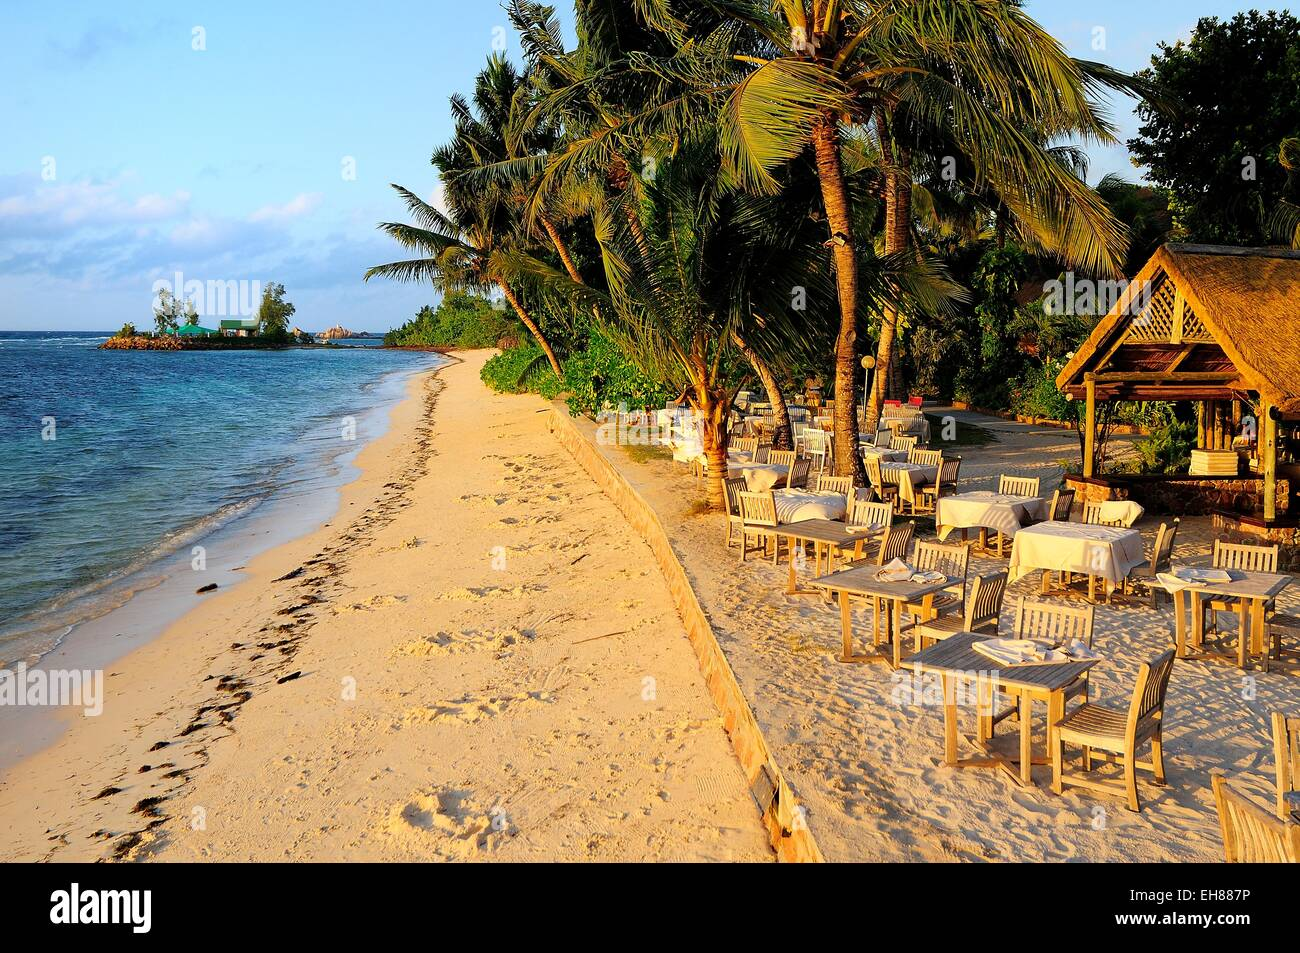 Bar on the beach at sunset, La Digue Island, La Digue and Inner Islands, Seychelles - Stock Image